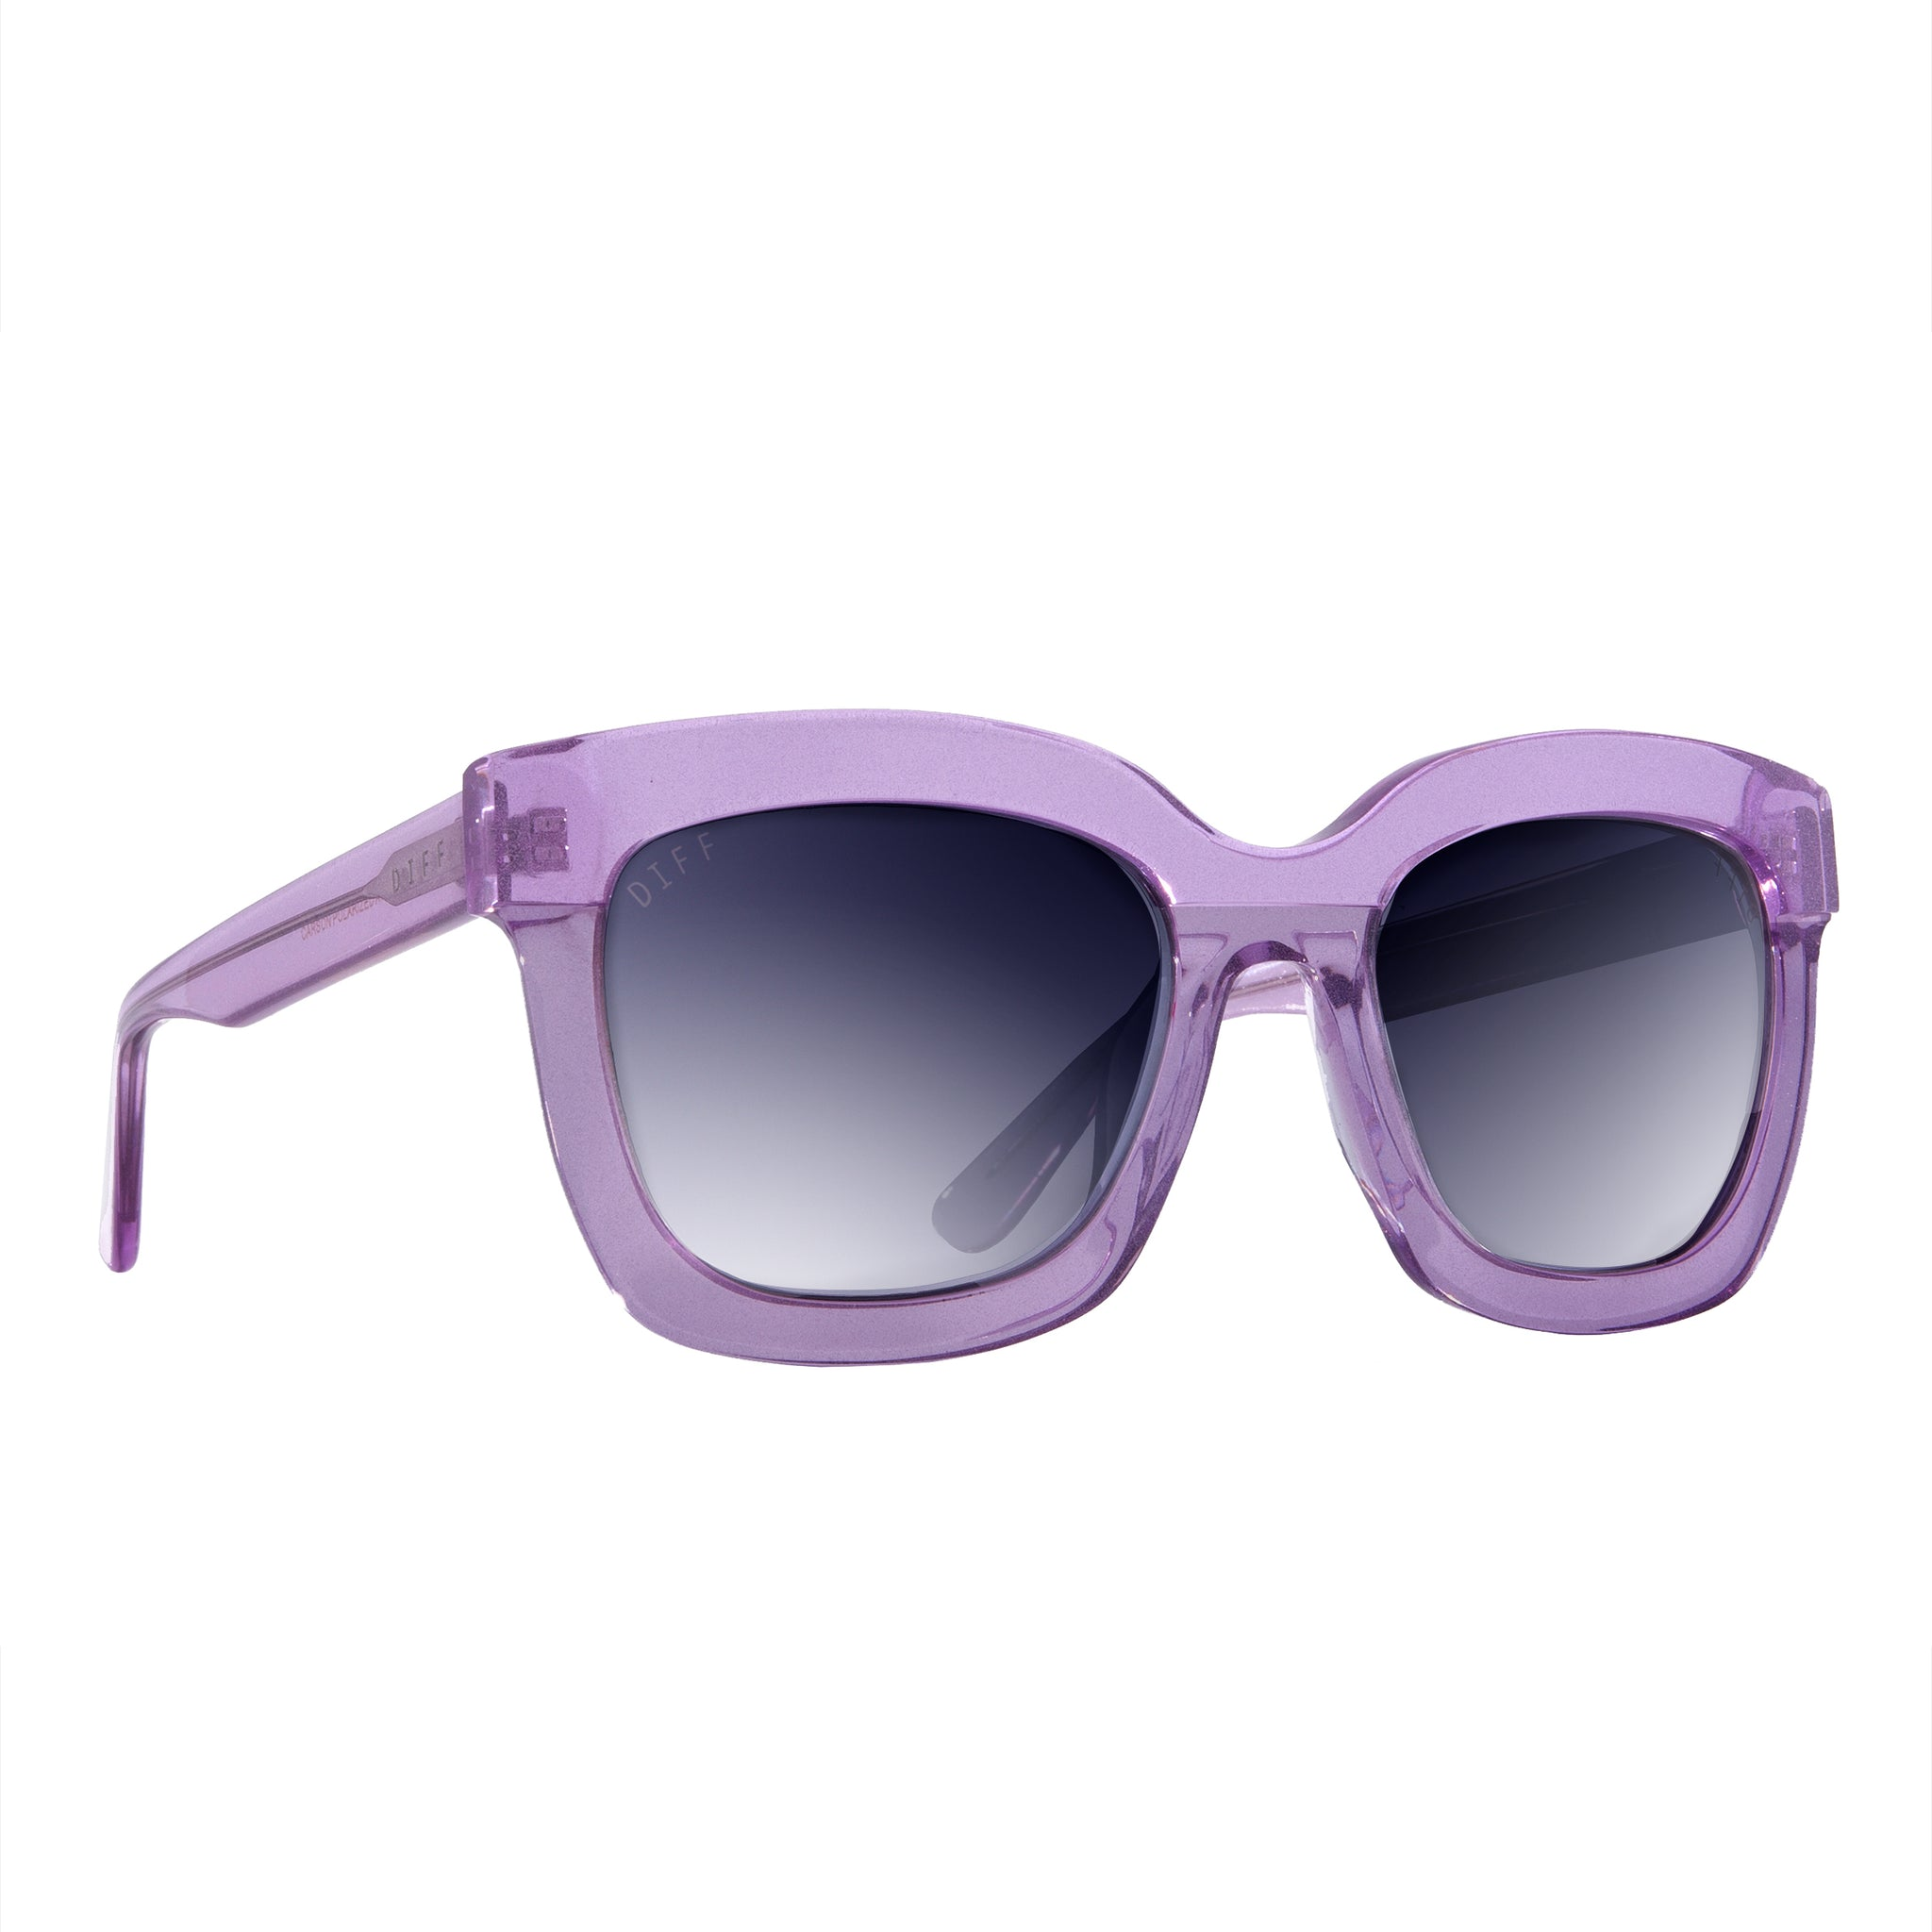 CARSON - AMETHYST GLITTER + SMOKE GRADIENT SILVER FLASH + POLARIZED